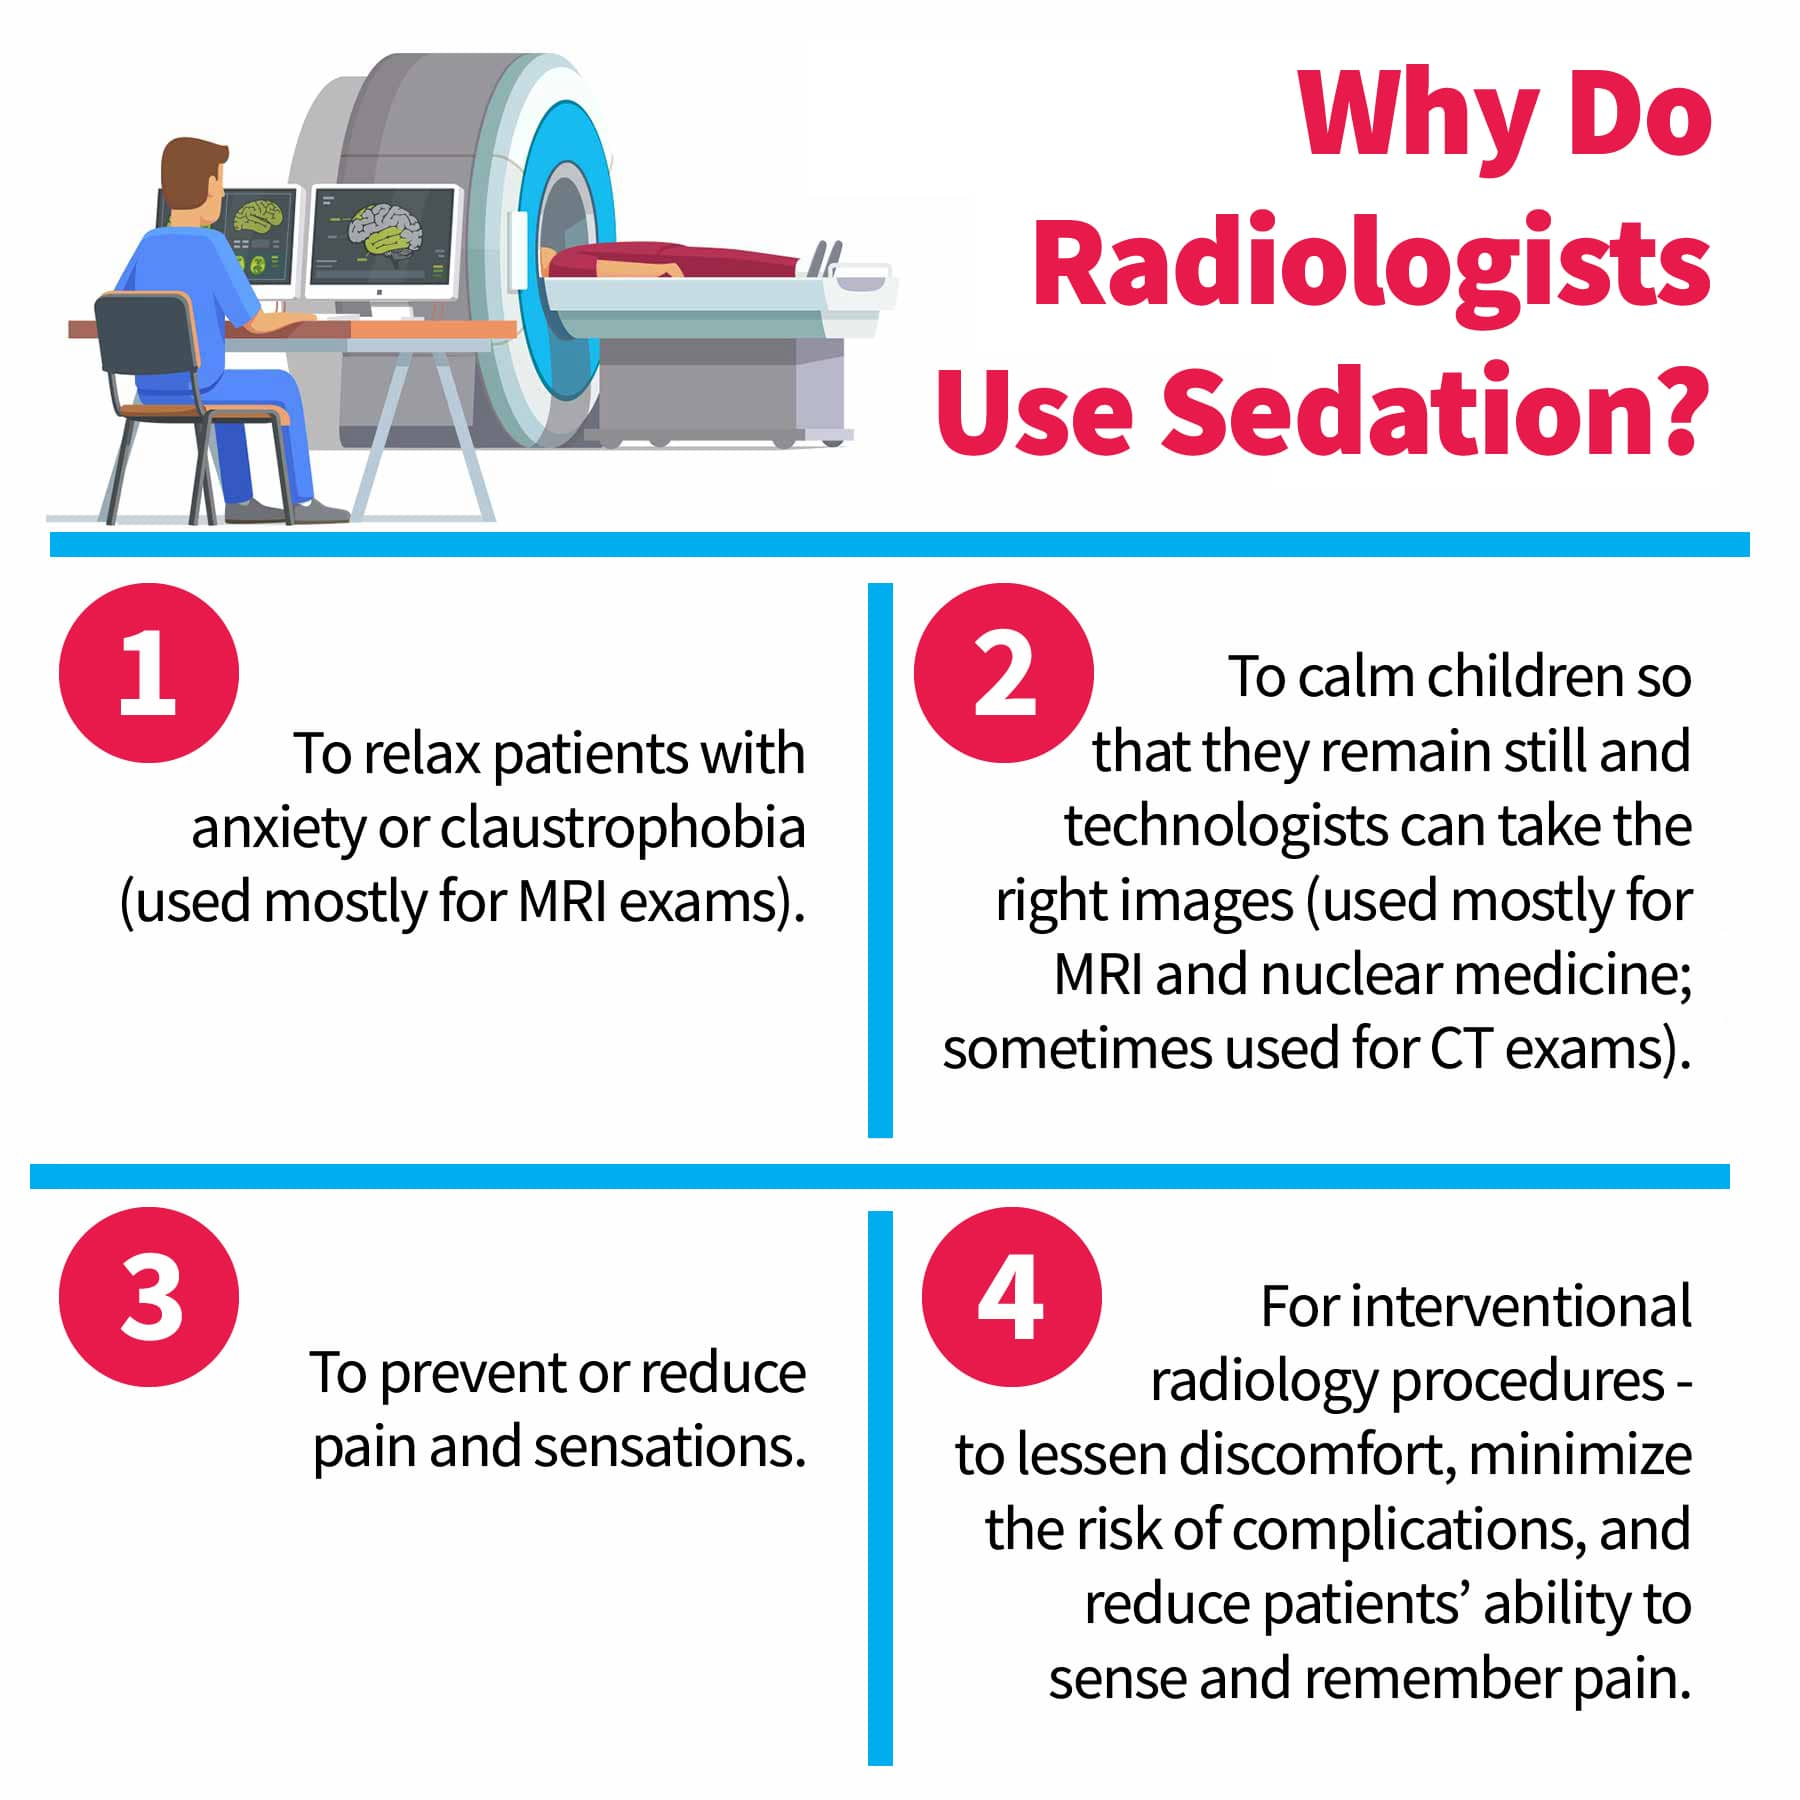 A graphic that describes the common reasons radiology uses sedation